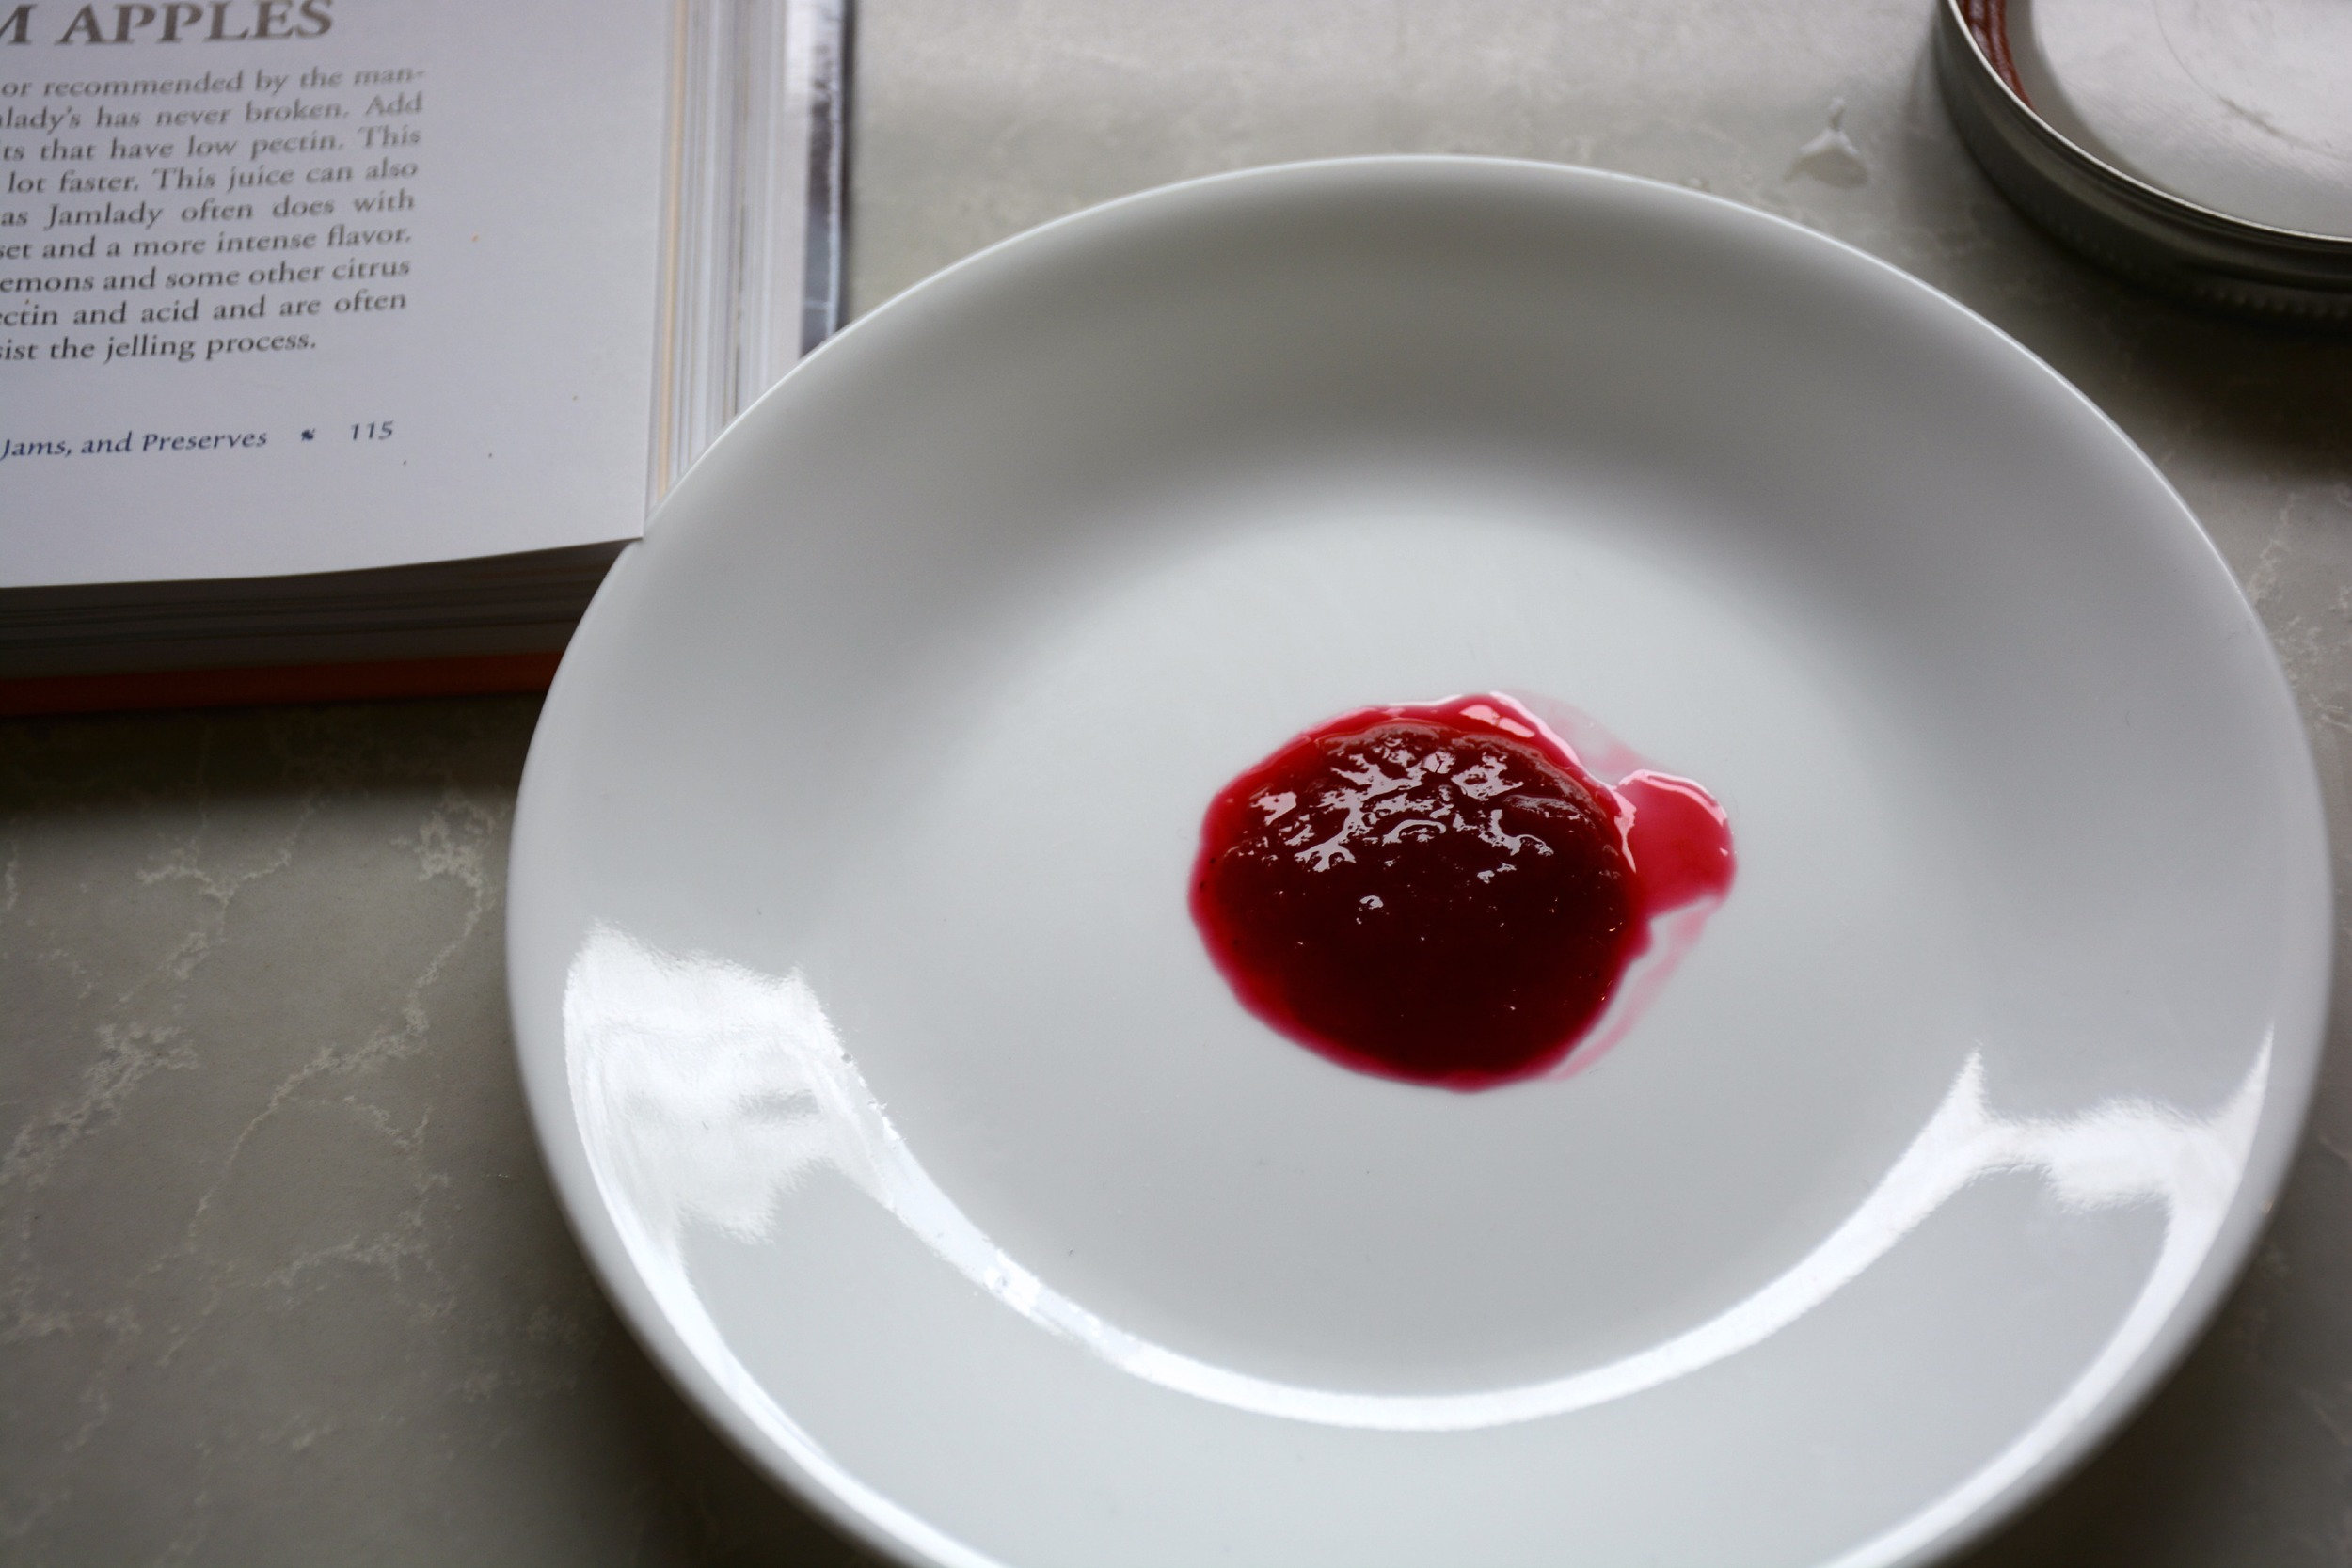 Raspberry Jam formed a nice solid mass